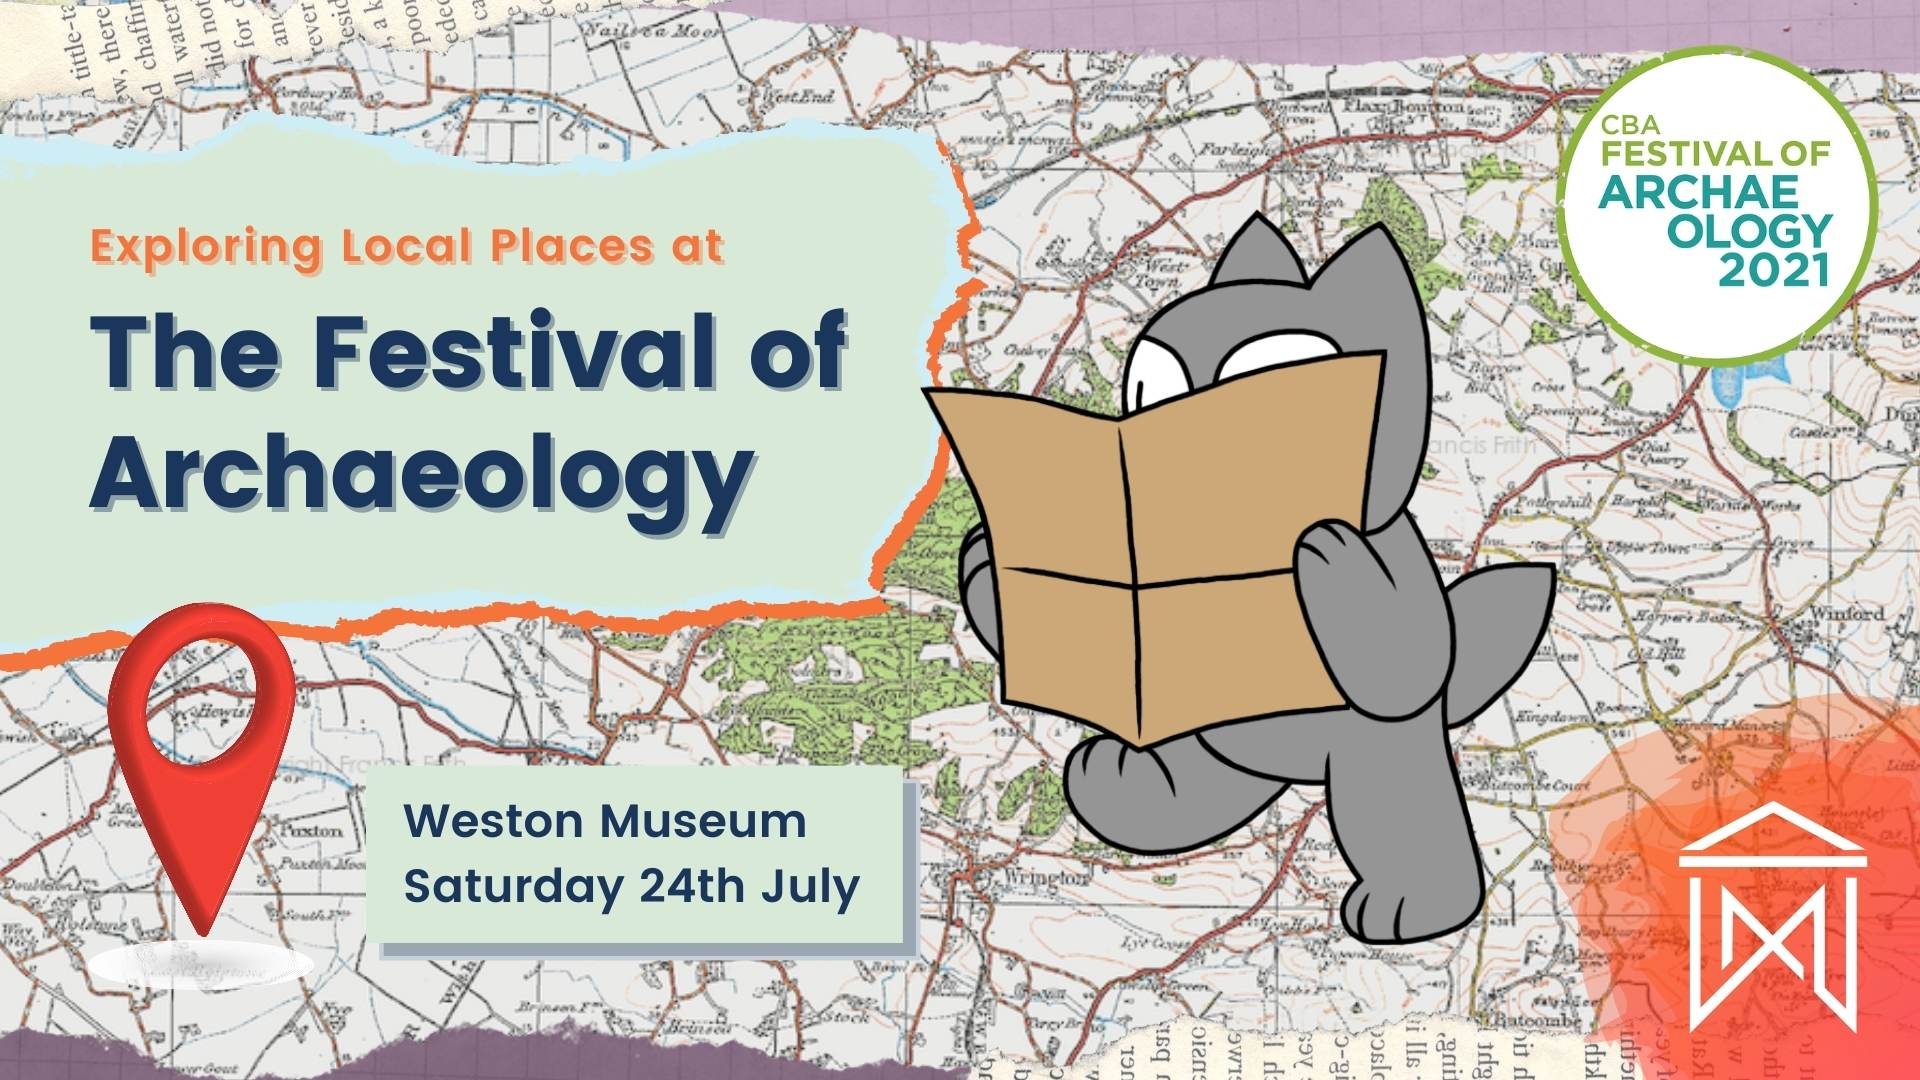 The Festival of Archaeology event poster